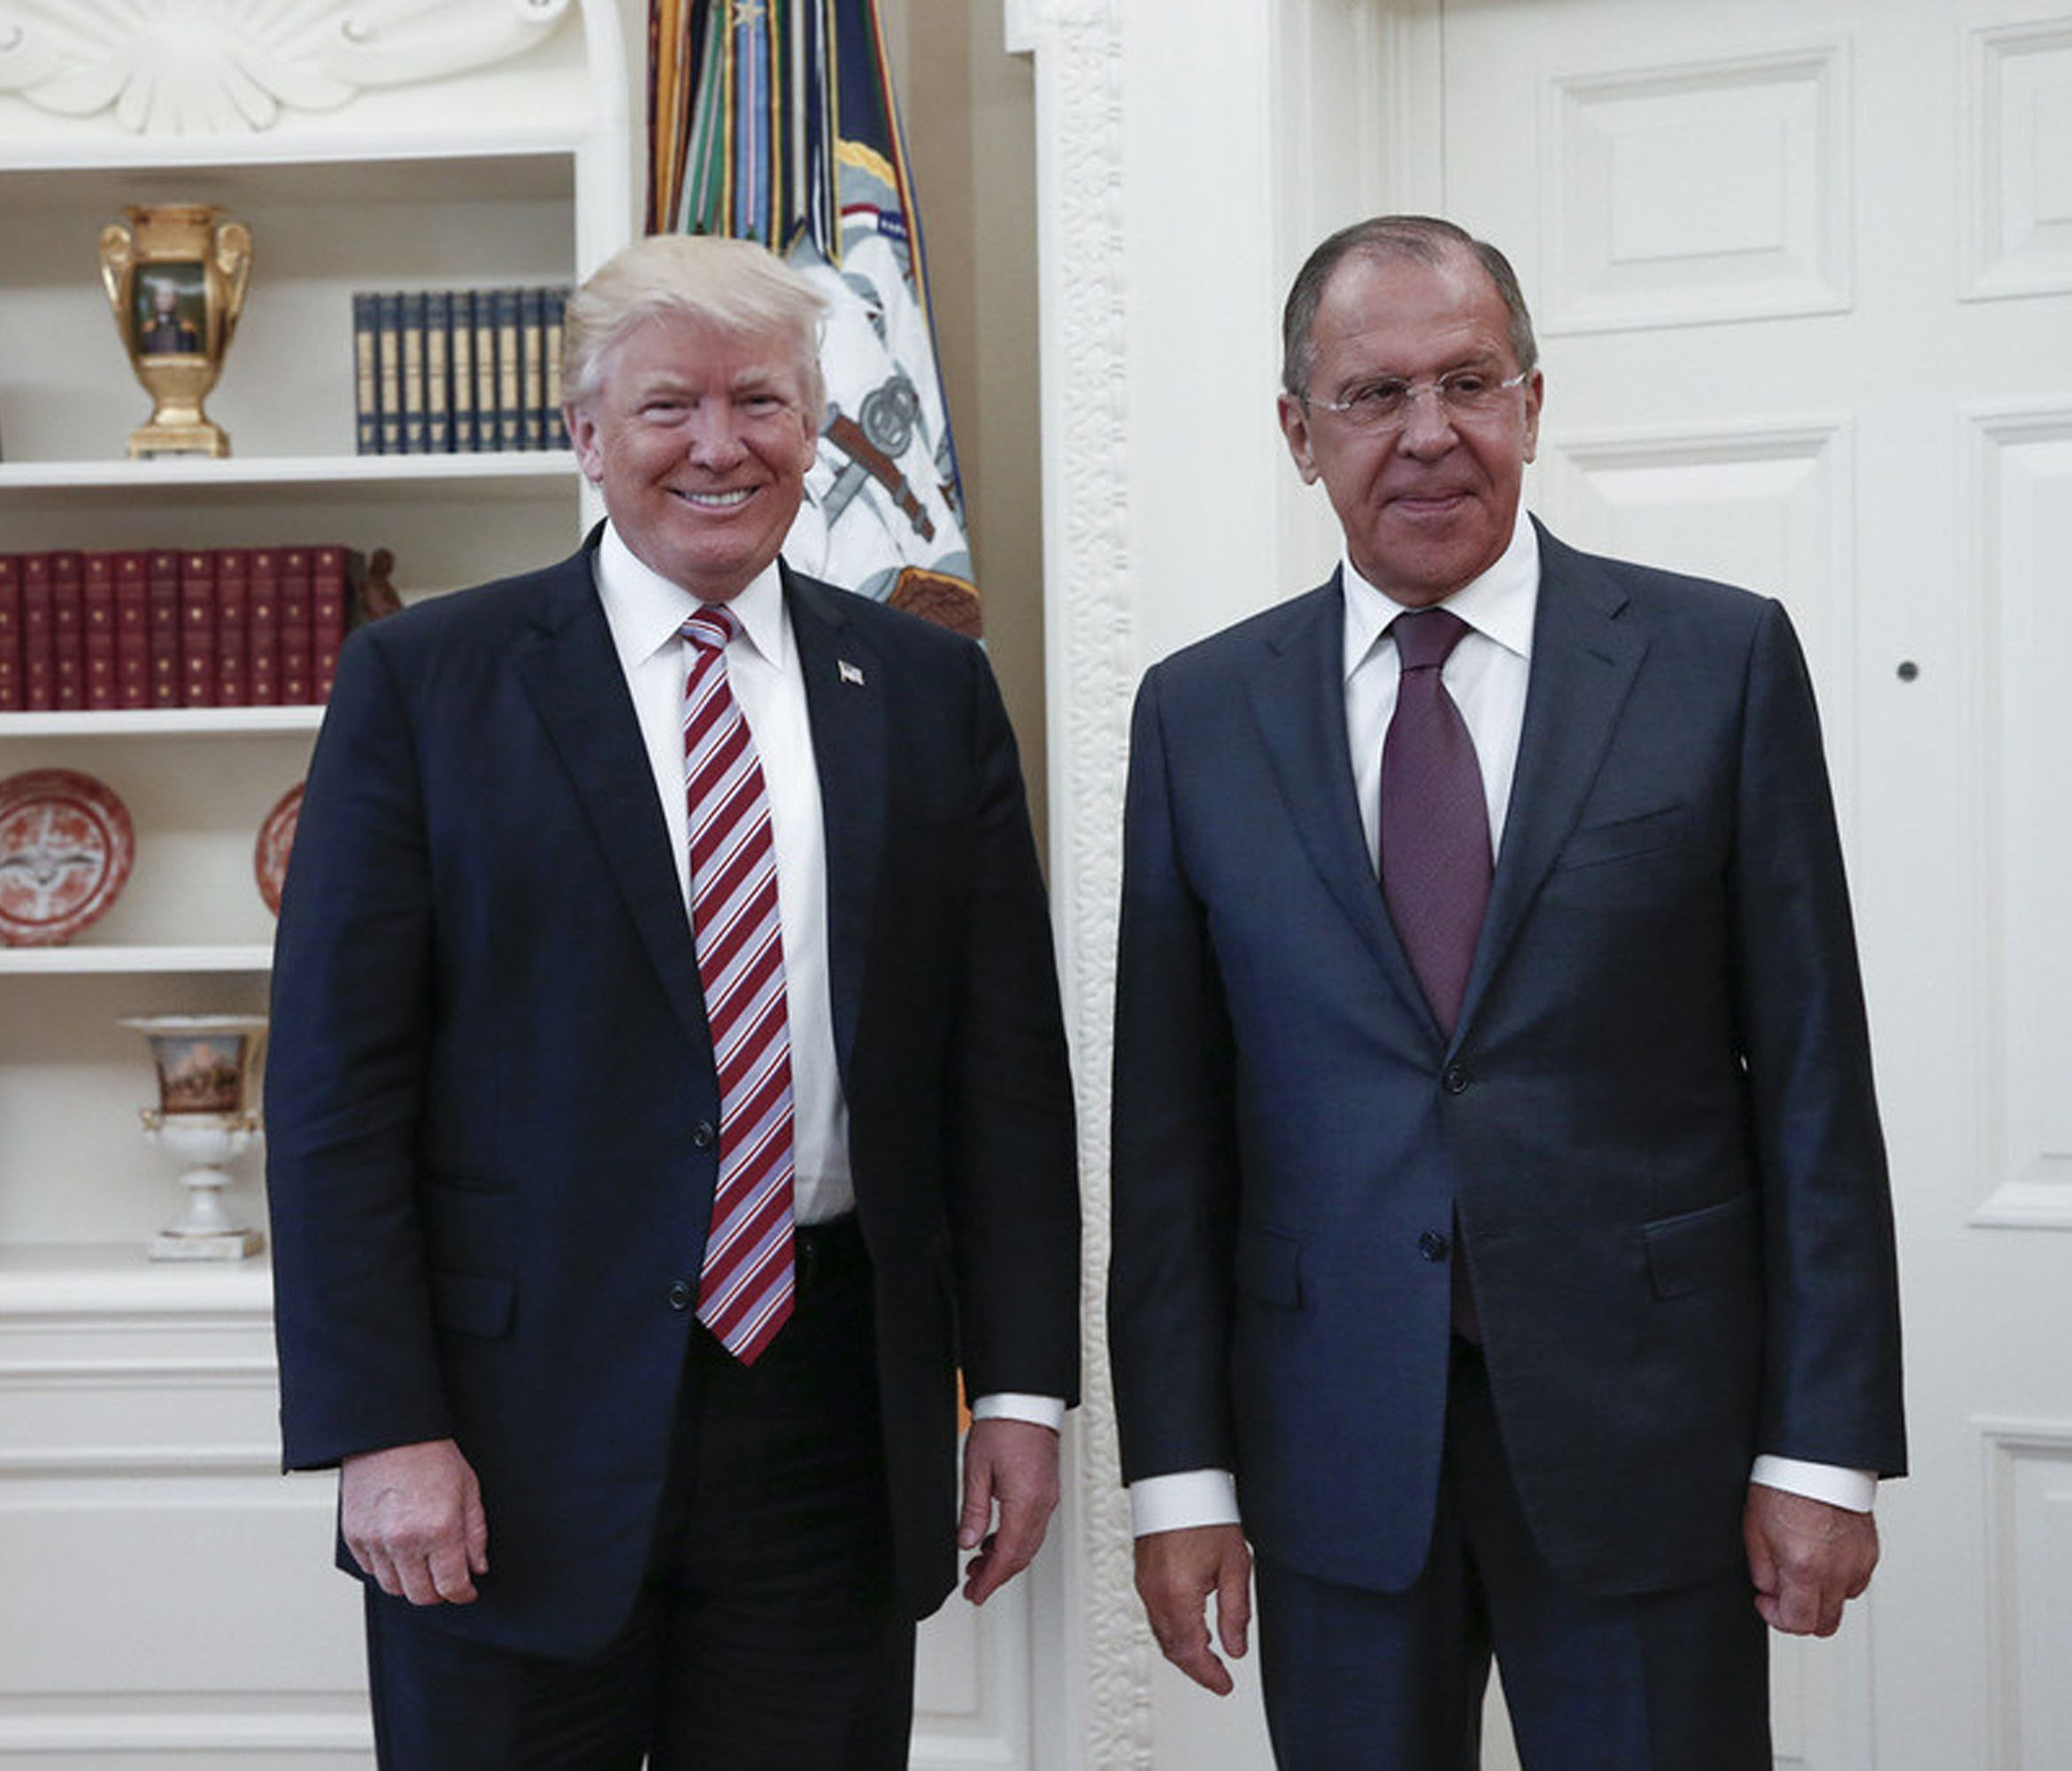 This file handout photo taken on May 10, 2017 made available by the Russian Foreign Ministry shows shows US President Donald J. Trump posing with Russian Foreign Minister Sergei Lavrov during their meeting at the White House. (Editor's note: USA TODA